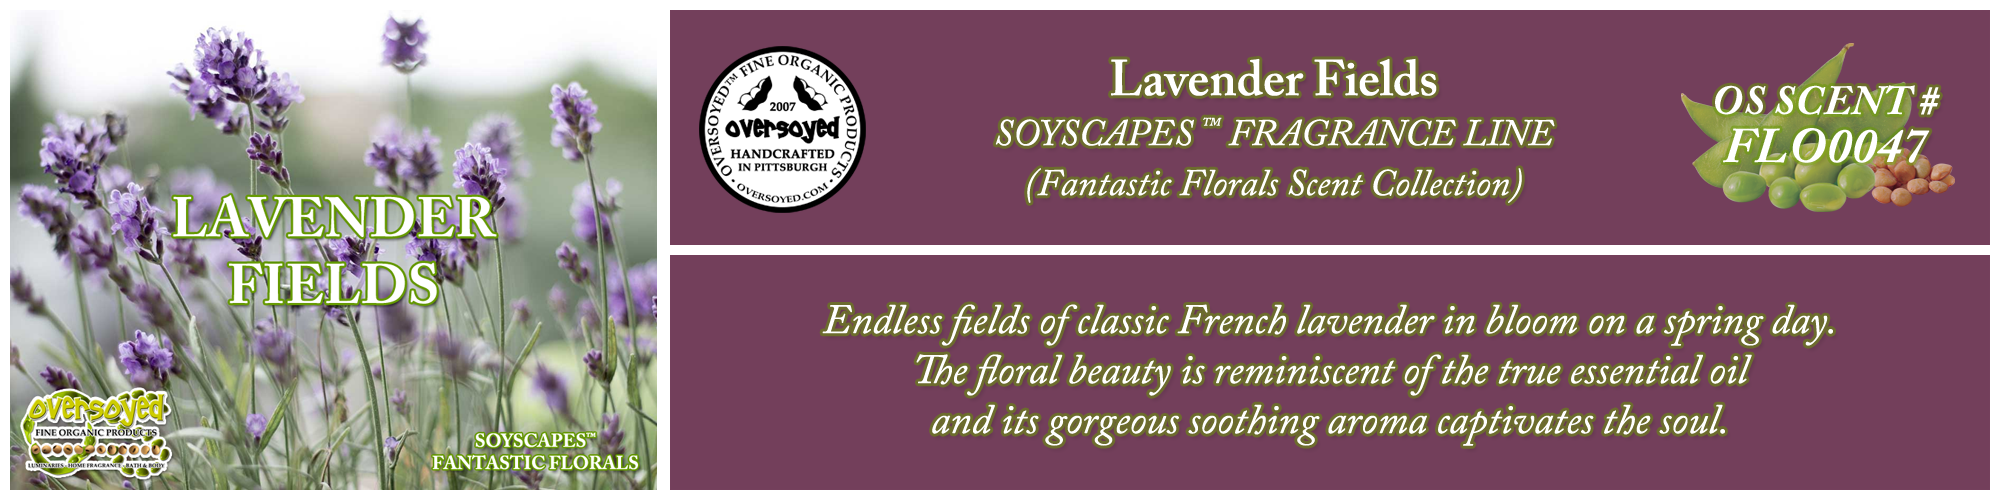 Lavender Fields Handcrafted Products Collection